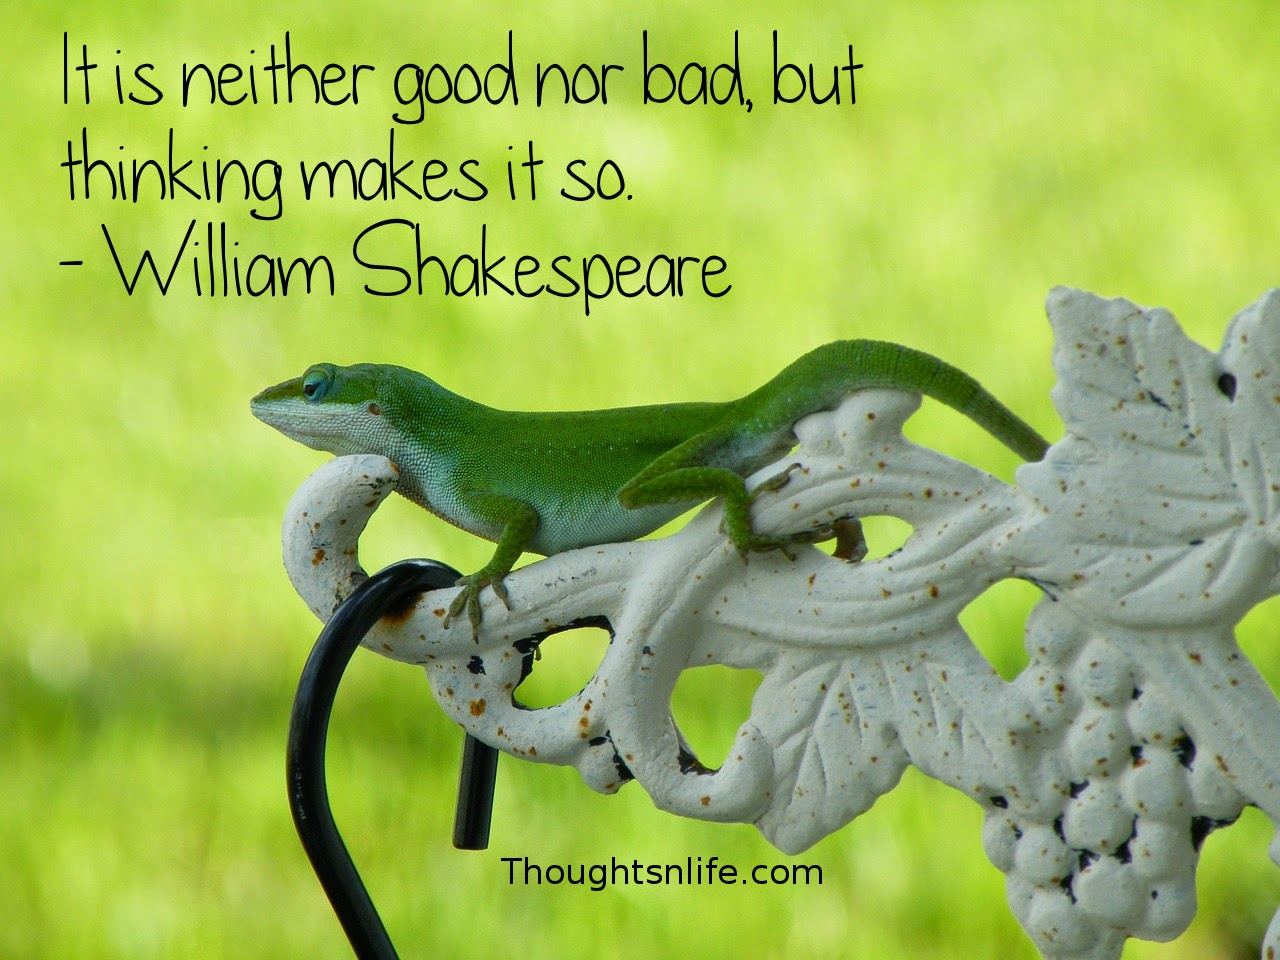 Thoughtsnlife.com: It is neither good nor bad, but thinking makes it so. - William Shakespeare